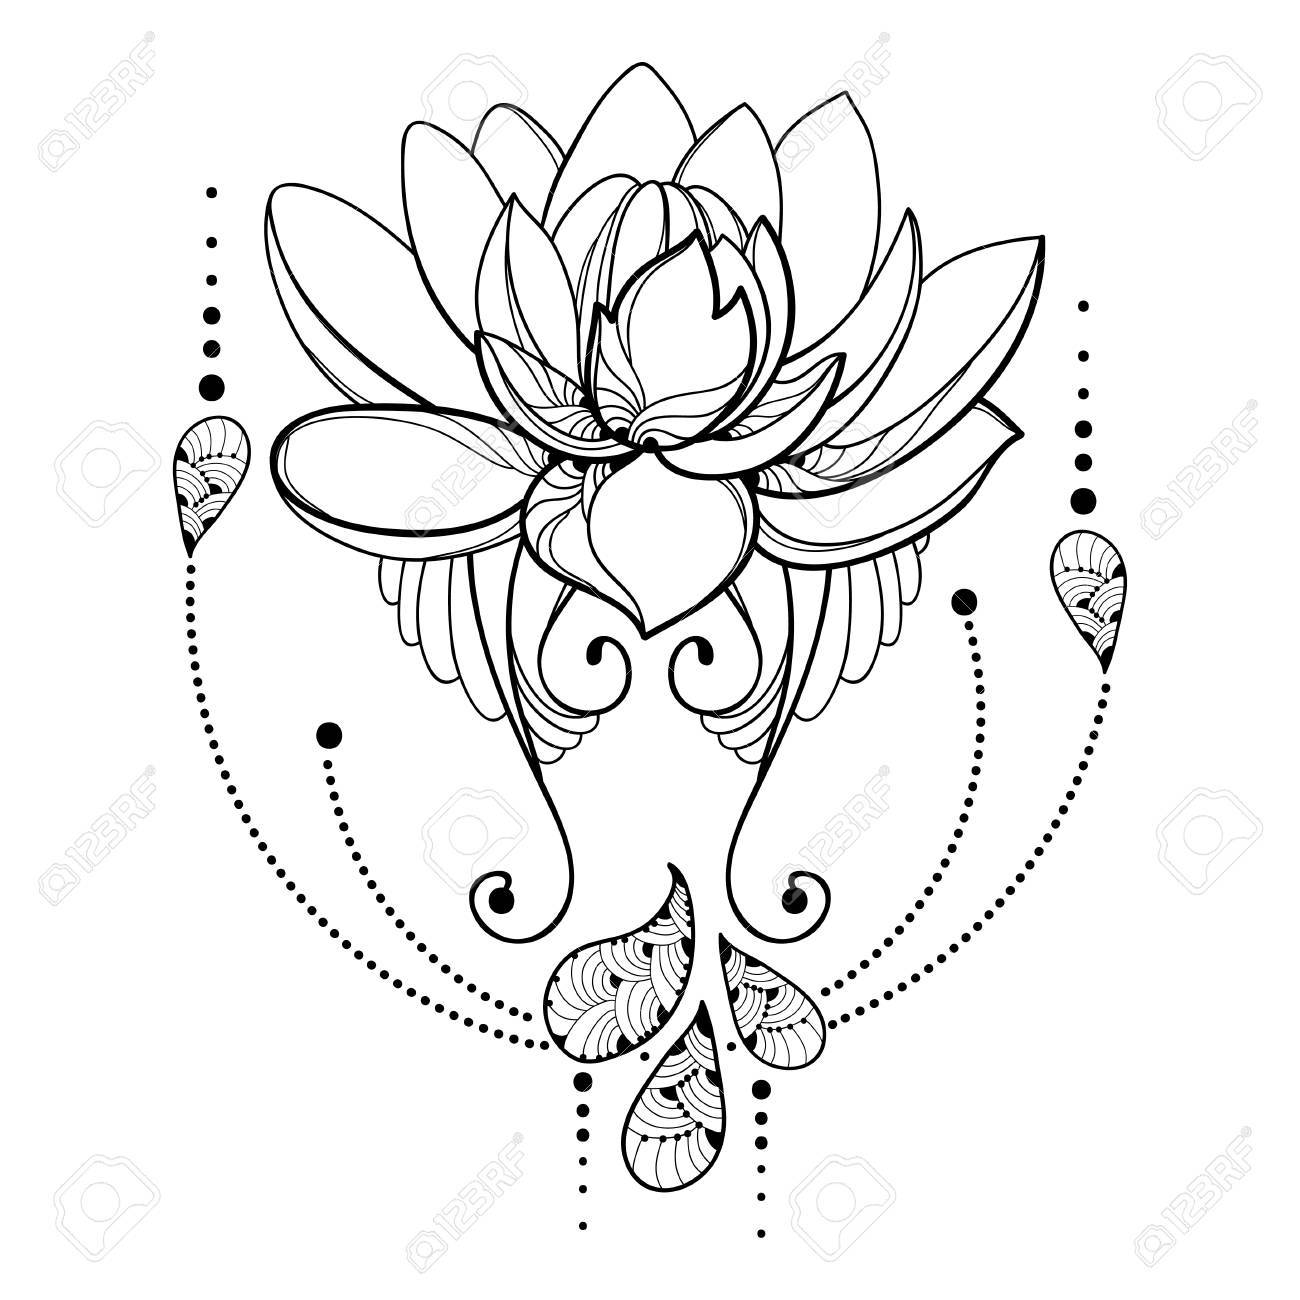 Drawing With Outline Lotus Flower Decorative Lace And Swirls 1300x1300